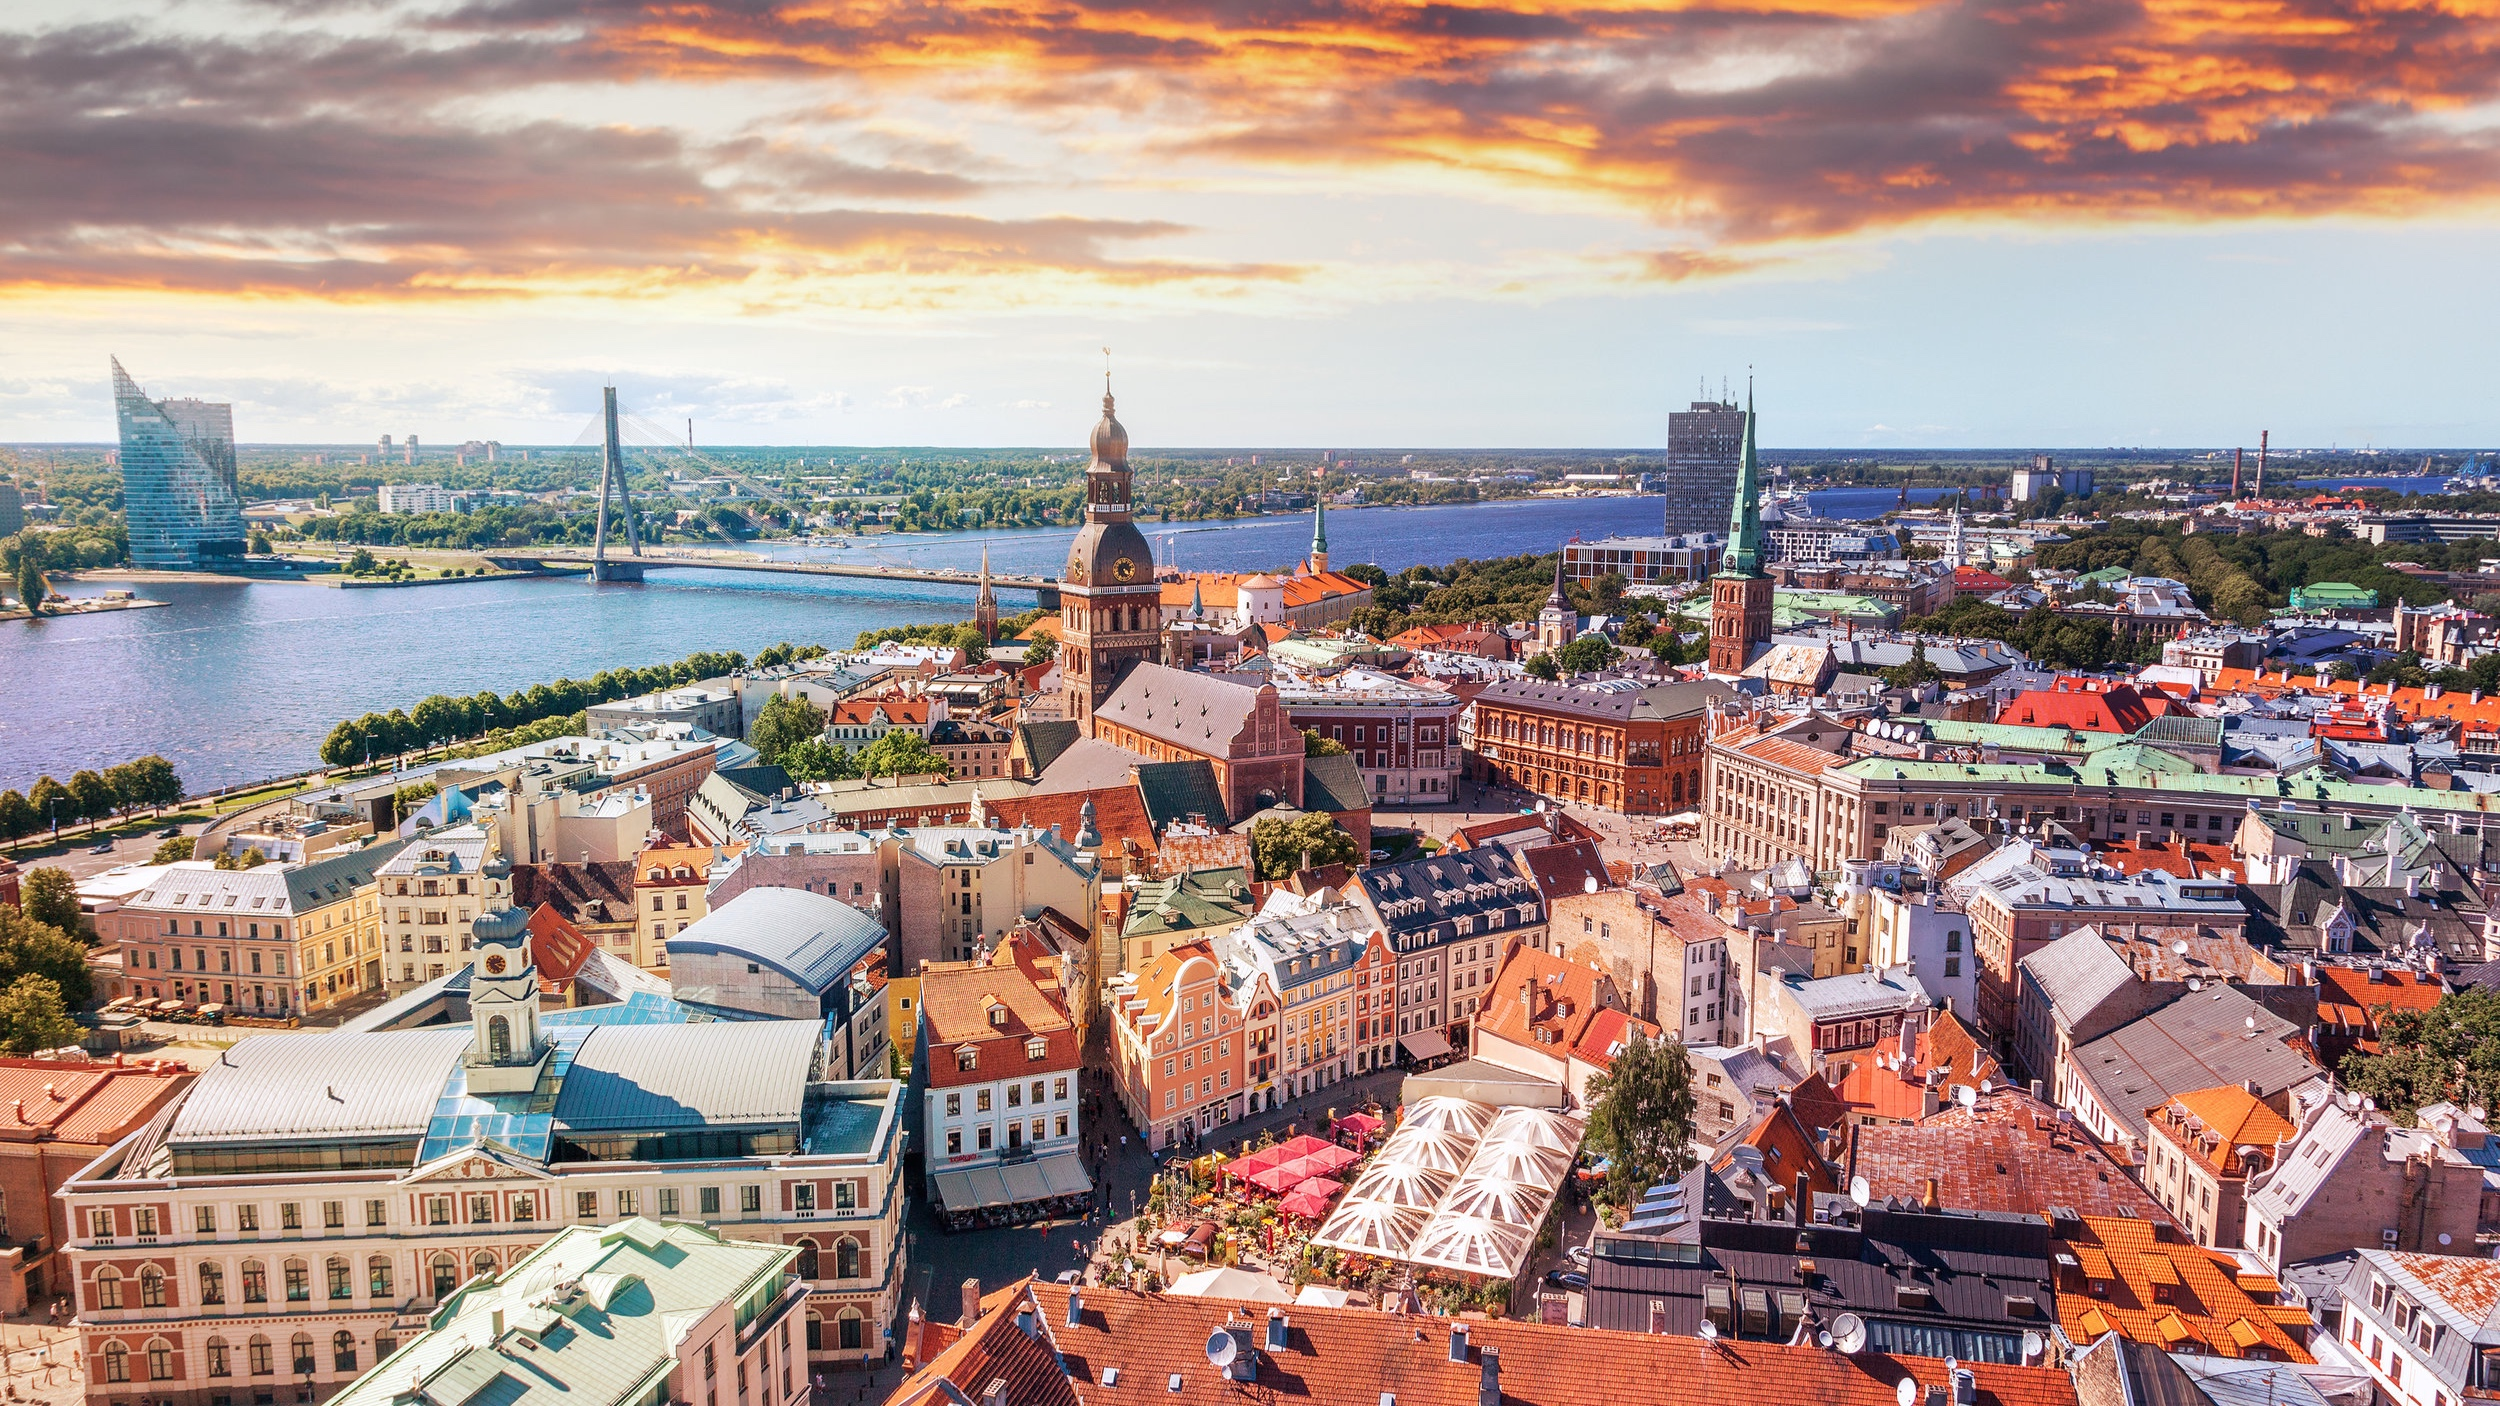 Company formation in Latvia with e-signature card - Company formation in Latvia with e-signature card. Including first year registered address in Riga, state fee for company incorporation, incorporation documents and IBAN opening.